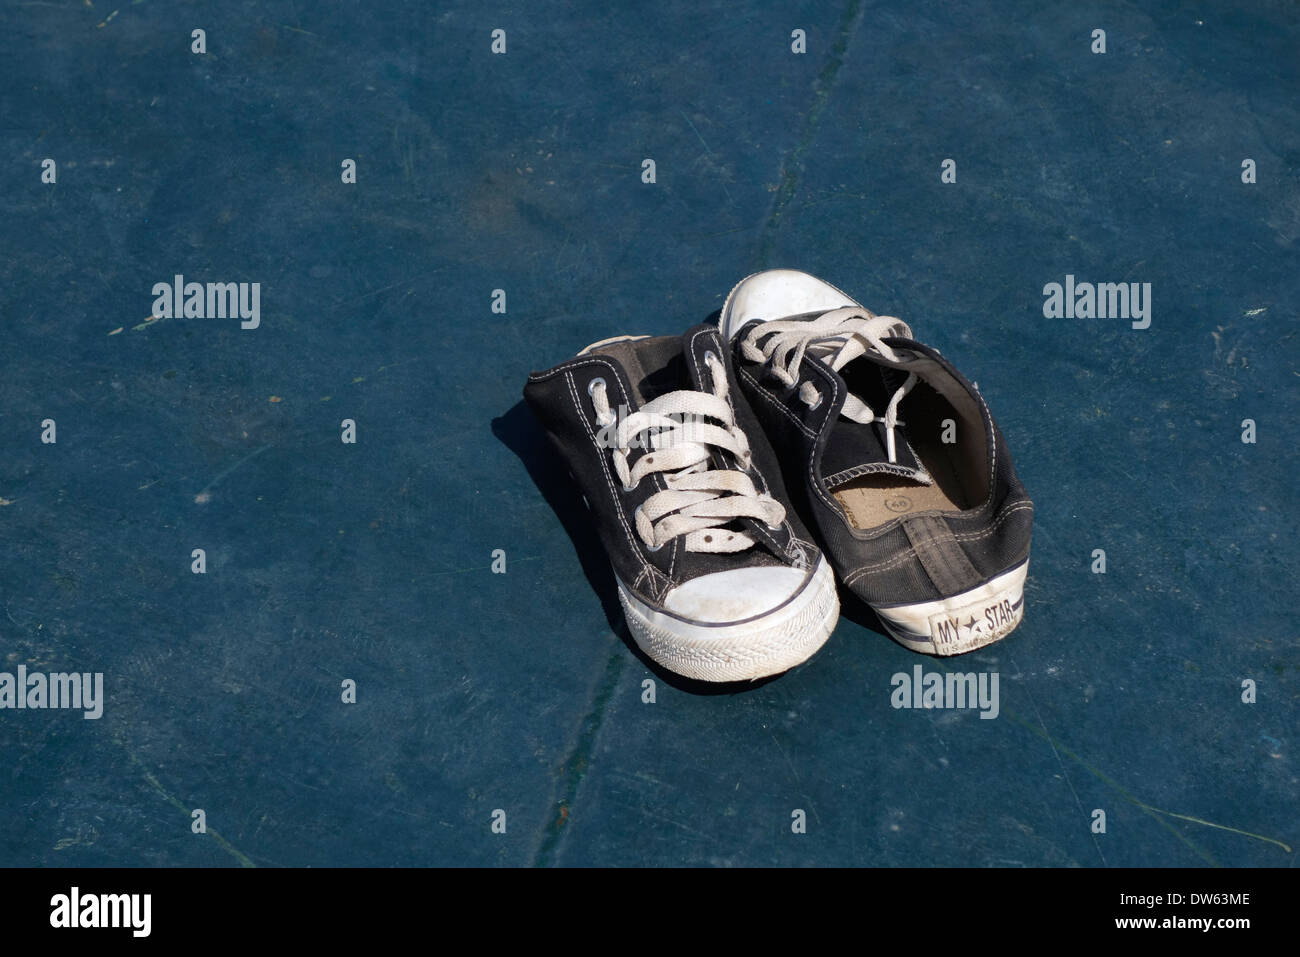 A pair of sneakers with their heels folded down. - Stock Image